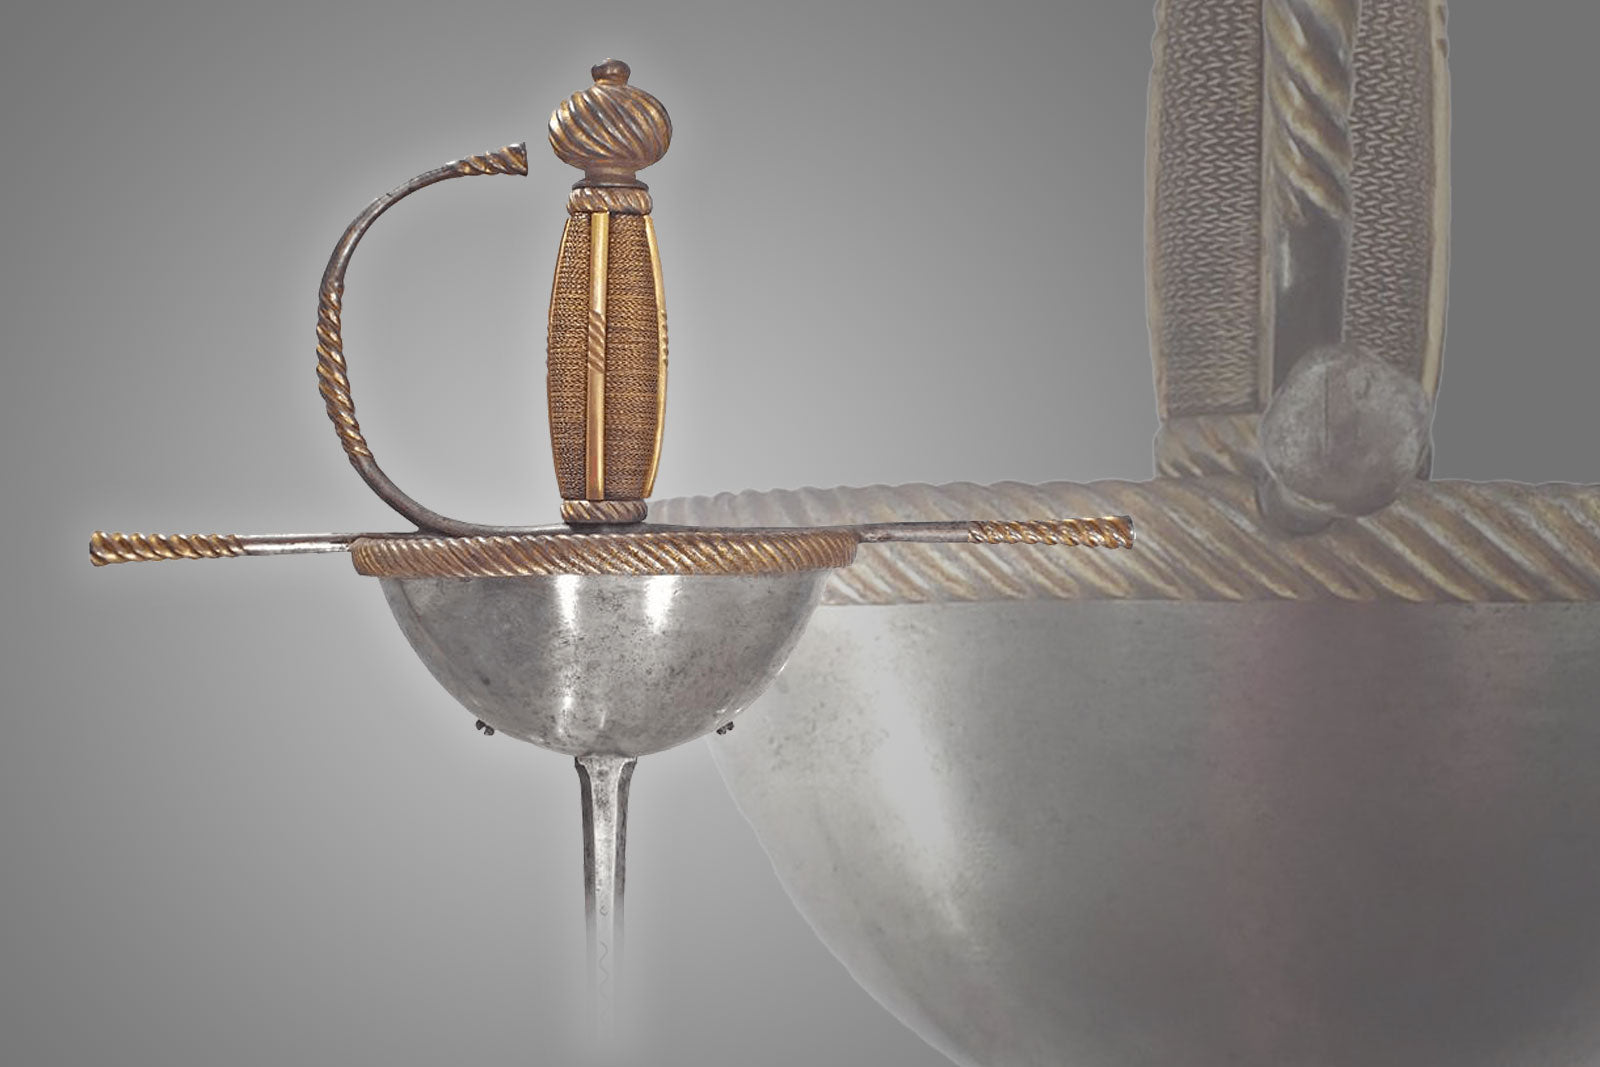 A Spanish Or Italian Cup Hilted Rapier C.1650